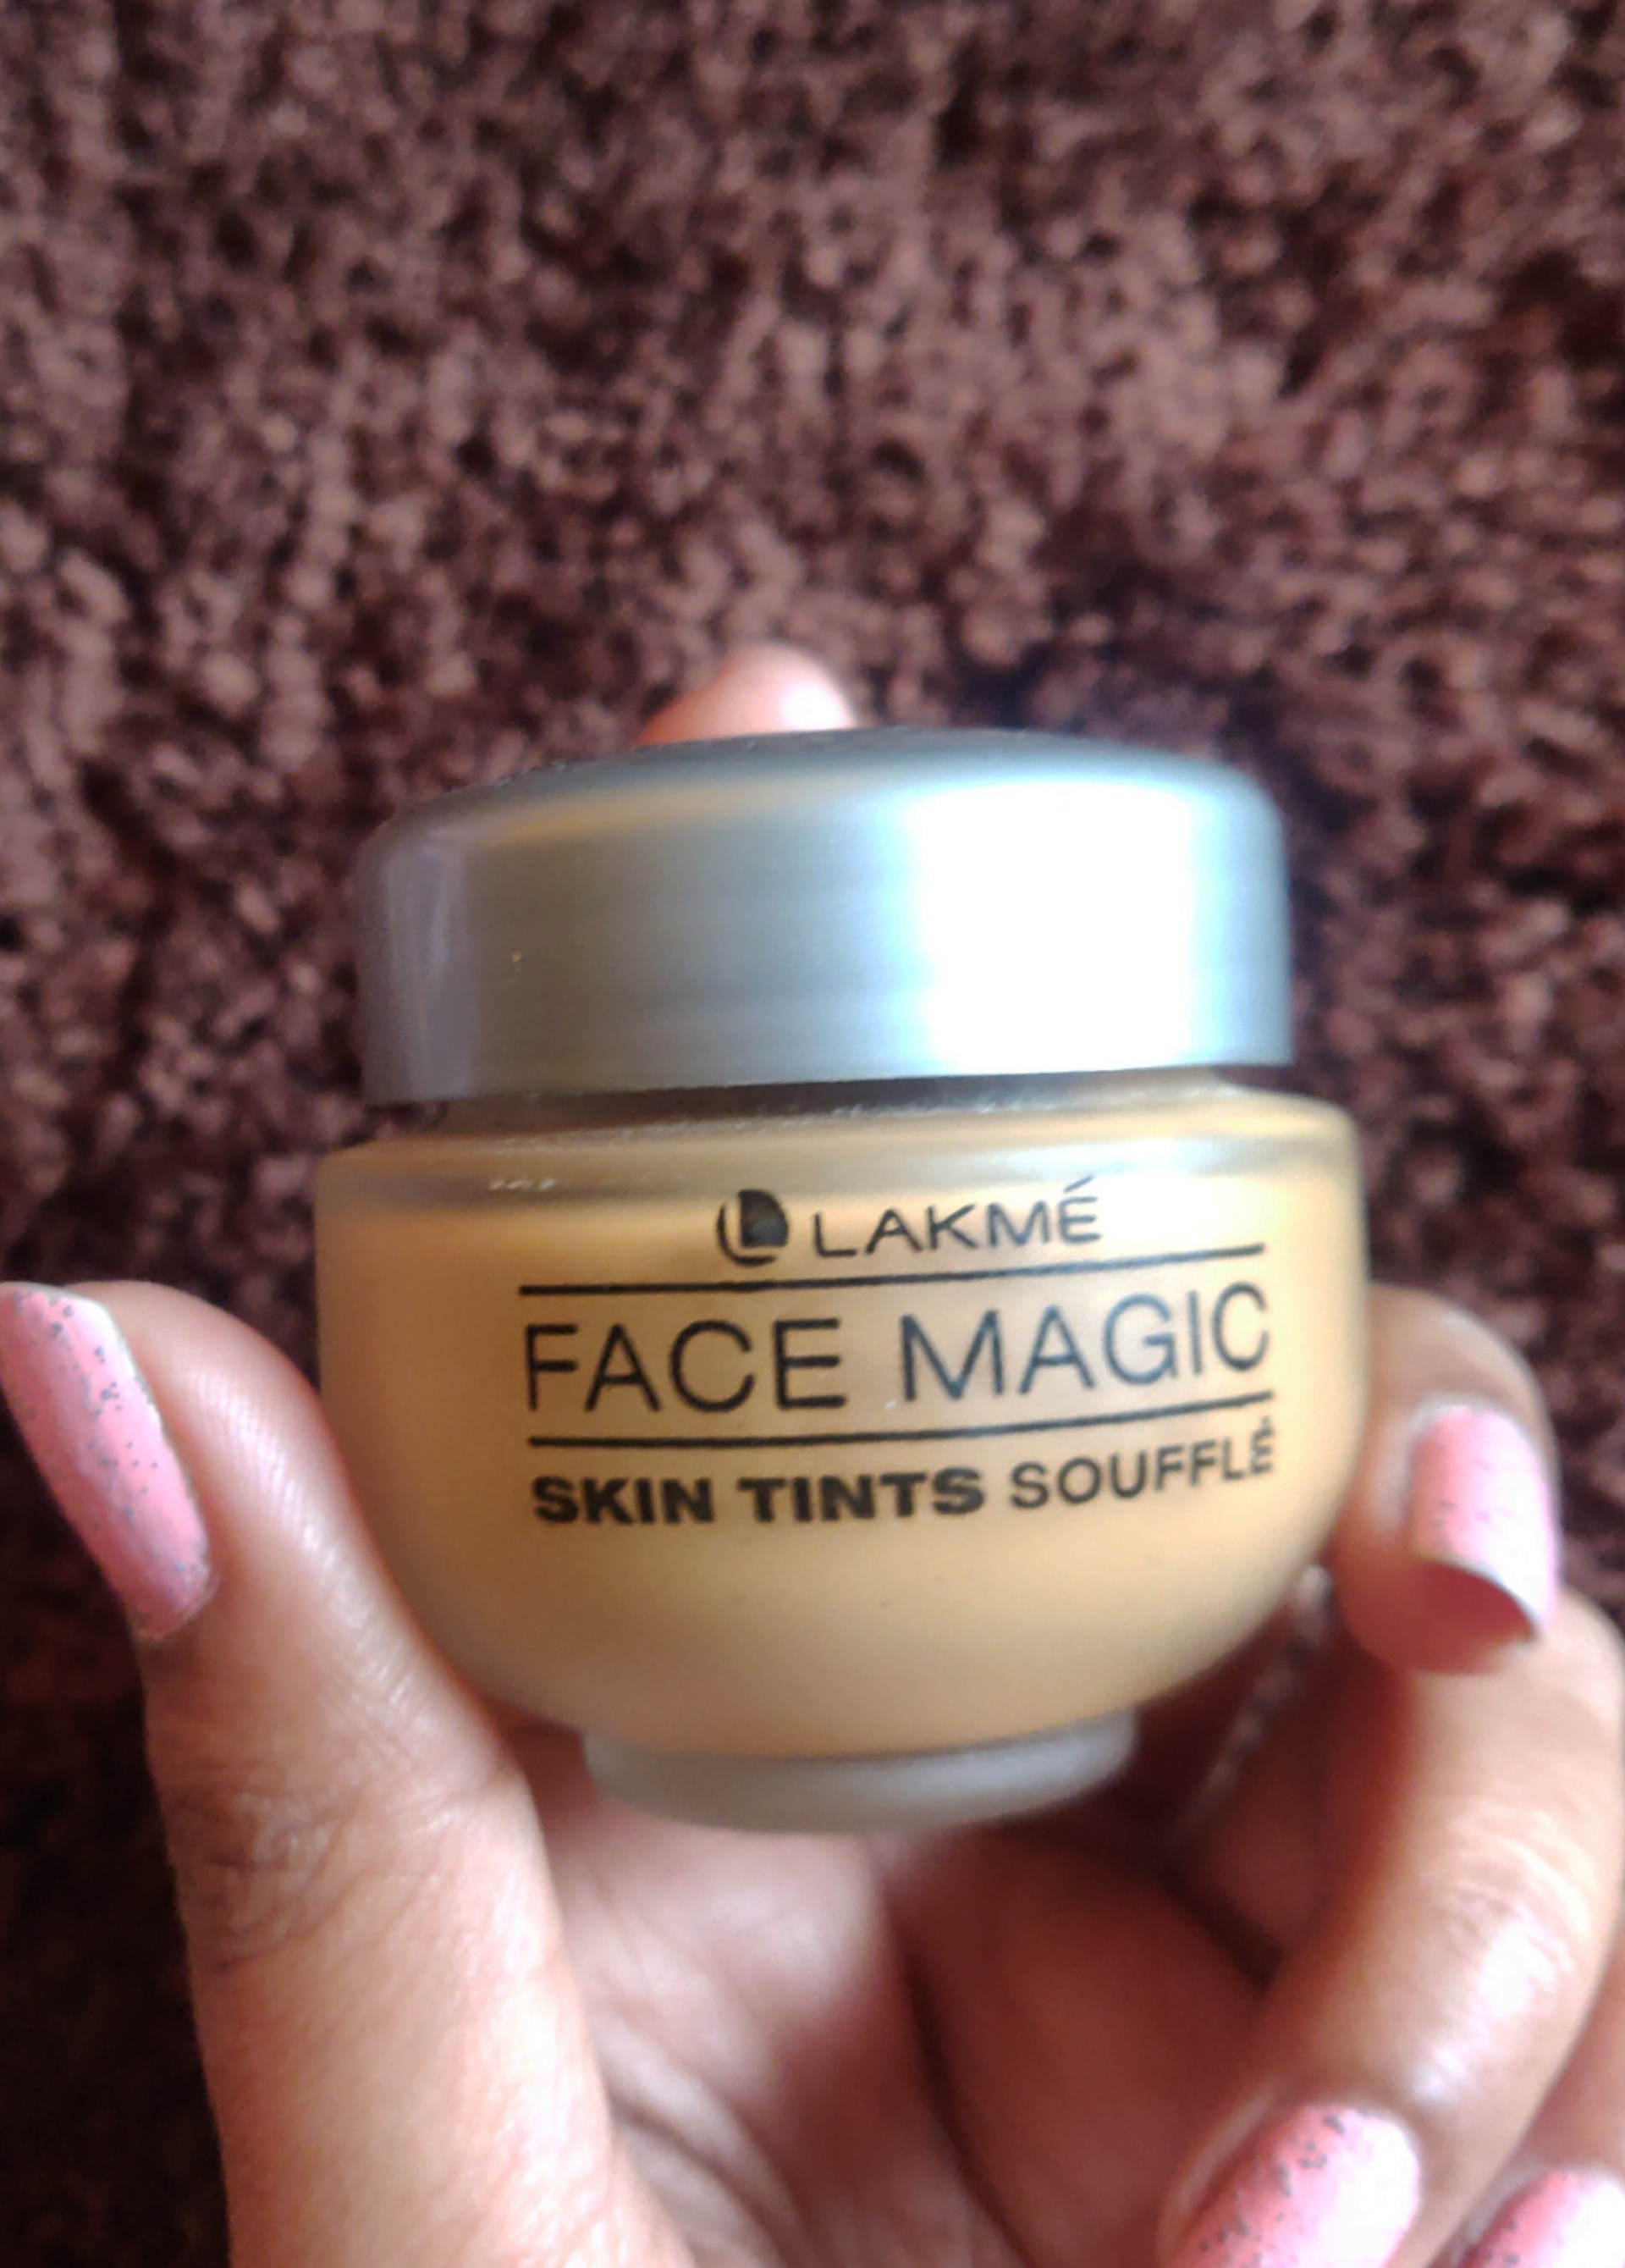 Lakme Face Magic Skin Tints Souffle -gives natural look-By swathiprabhu